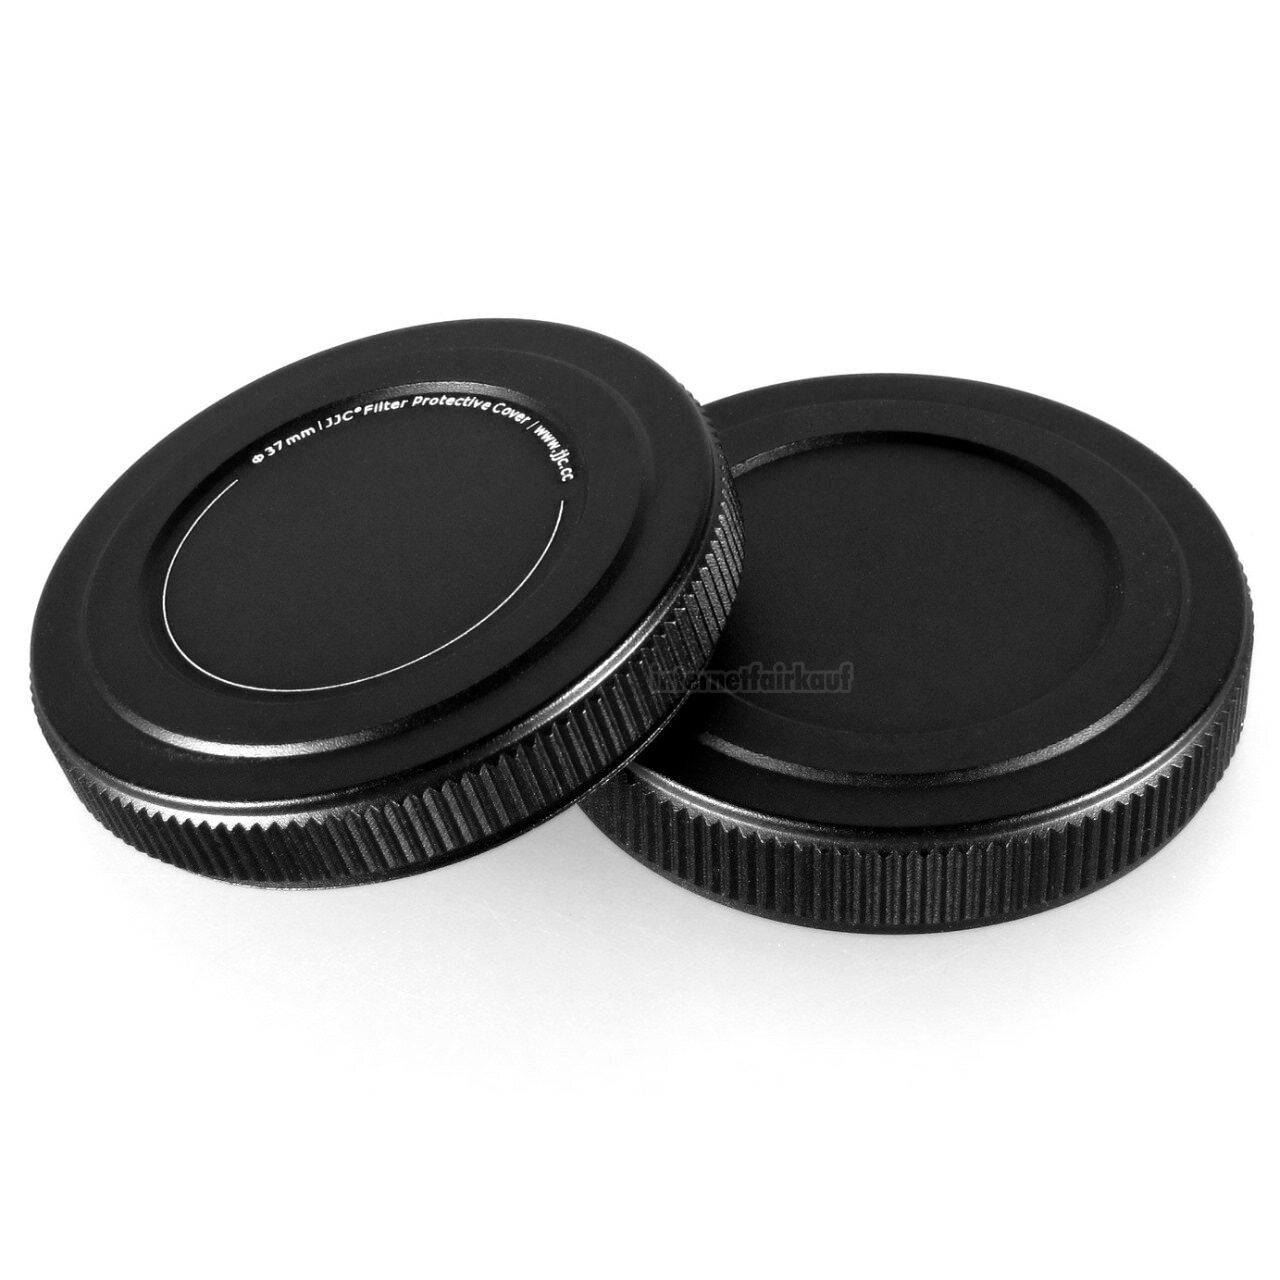 37mm Stack Caps Filterkappen Filter Container - JJC SC-37II